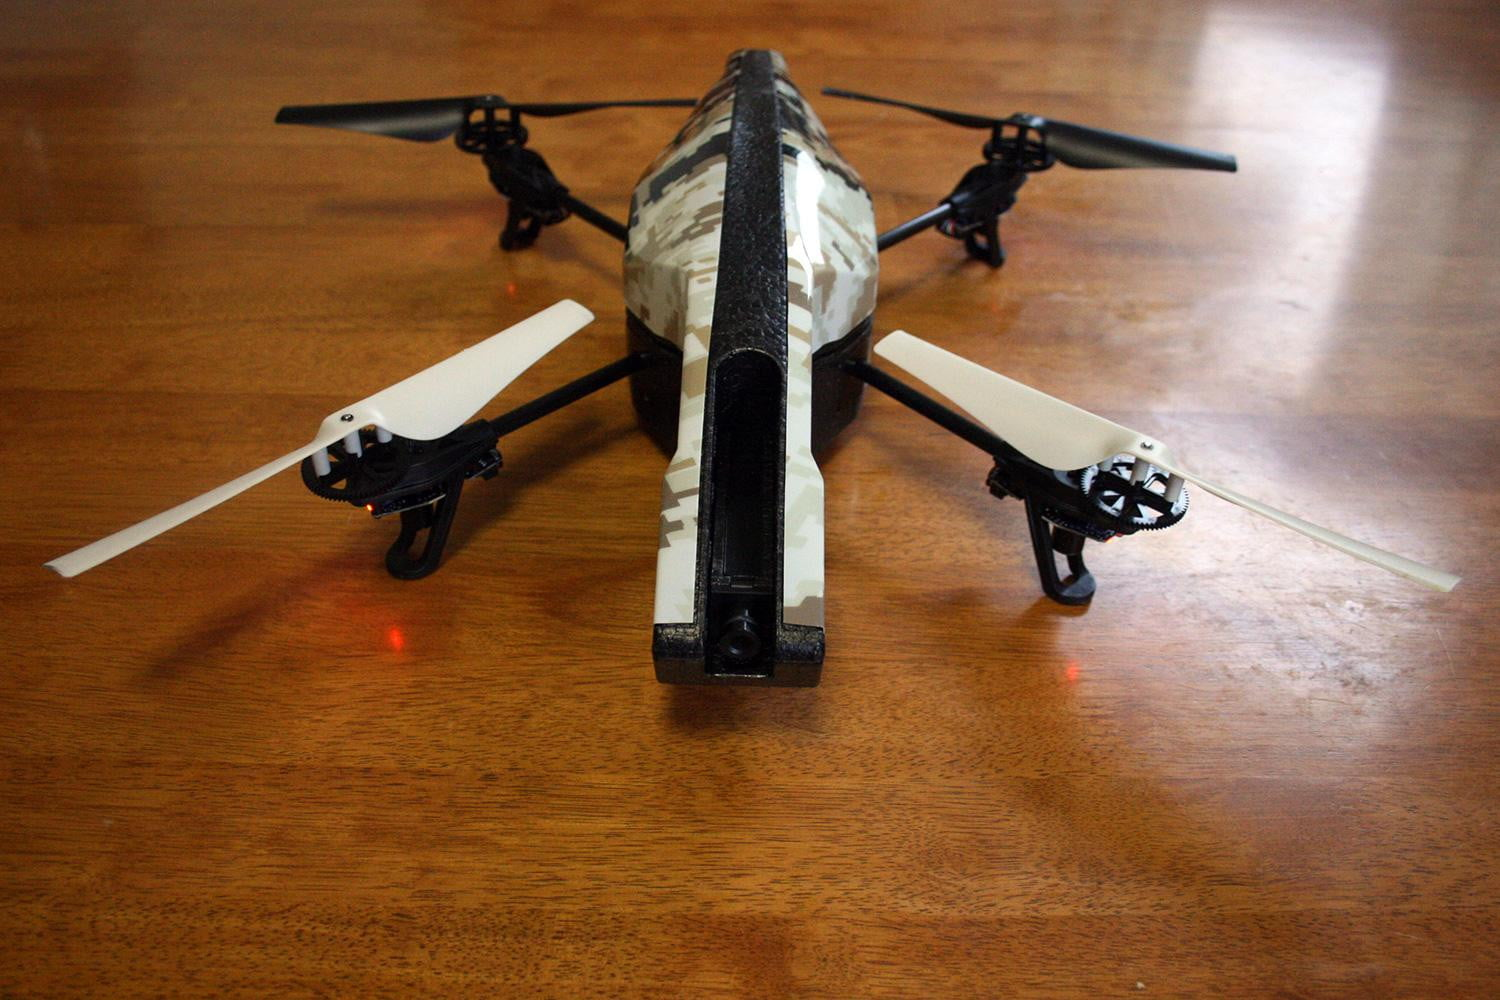 parrot drone 2 0 review with Hands On Parrot Ar Drone 2 Elite Edition on Drone Hire List Drone Business likewise 3 Axis Parrot Sequoia Stabilized Gimbal For Dji Matrice 600 also 9200000025960036 together with Typical Quad Circuit moreover The Snglrty Watch Started Life As A Doodle On A Co.